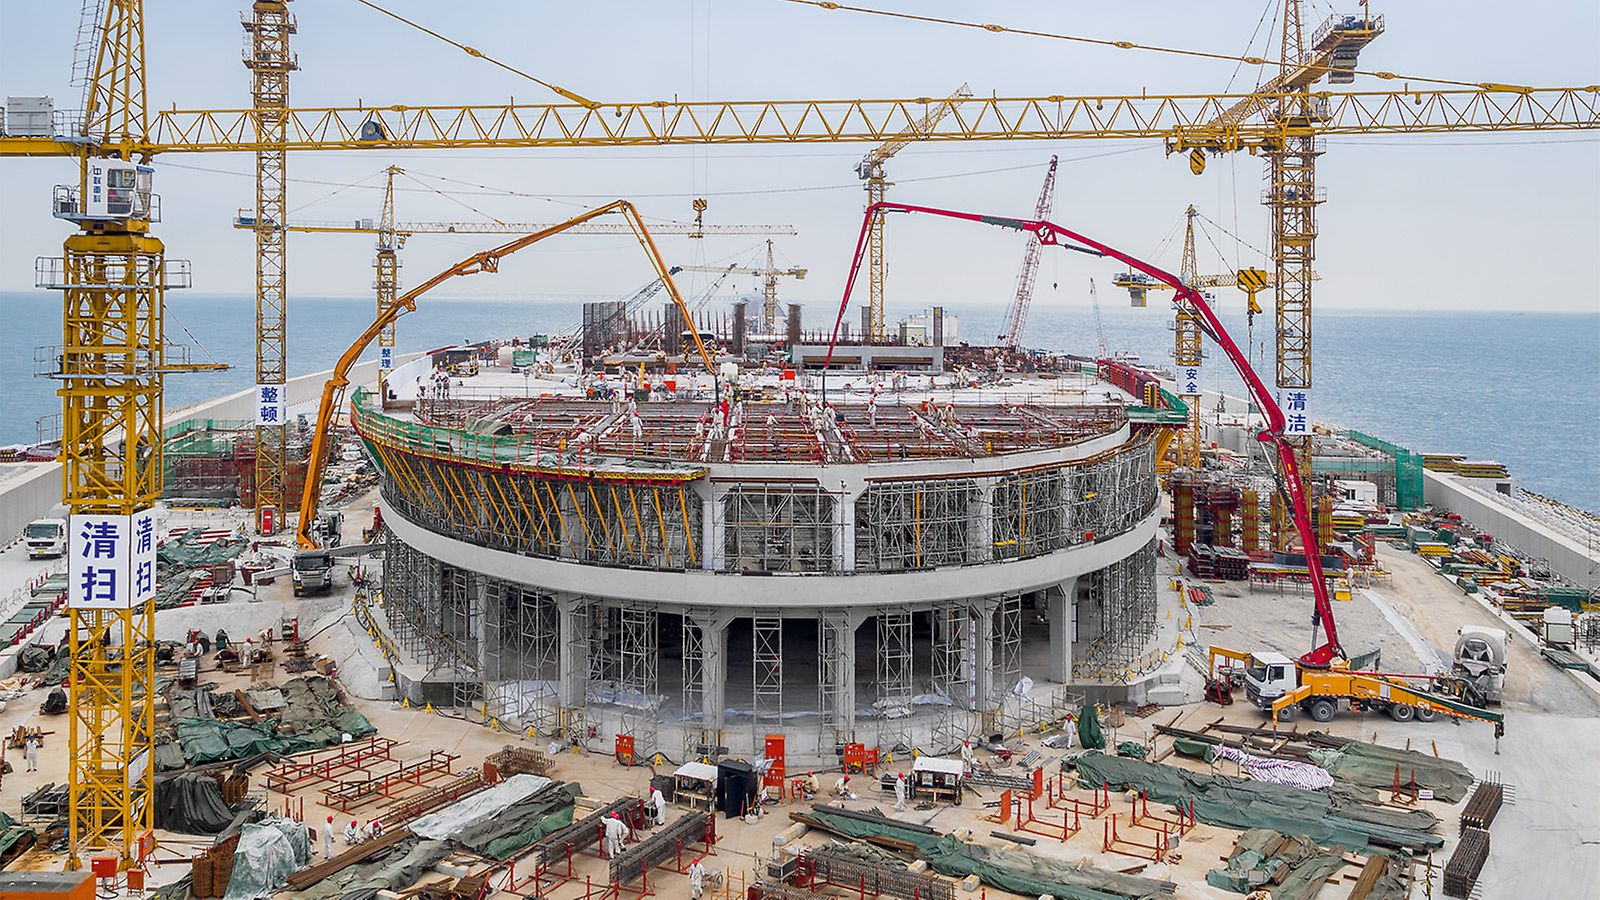 PERI also planned and delivered the formwork solutions for the circumferential wave breakers as well as the multi-storey operation buildings on the artificial islands. The highest possible architectural concrete quality was the decisive requirement for the execution of the construction work.